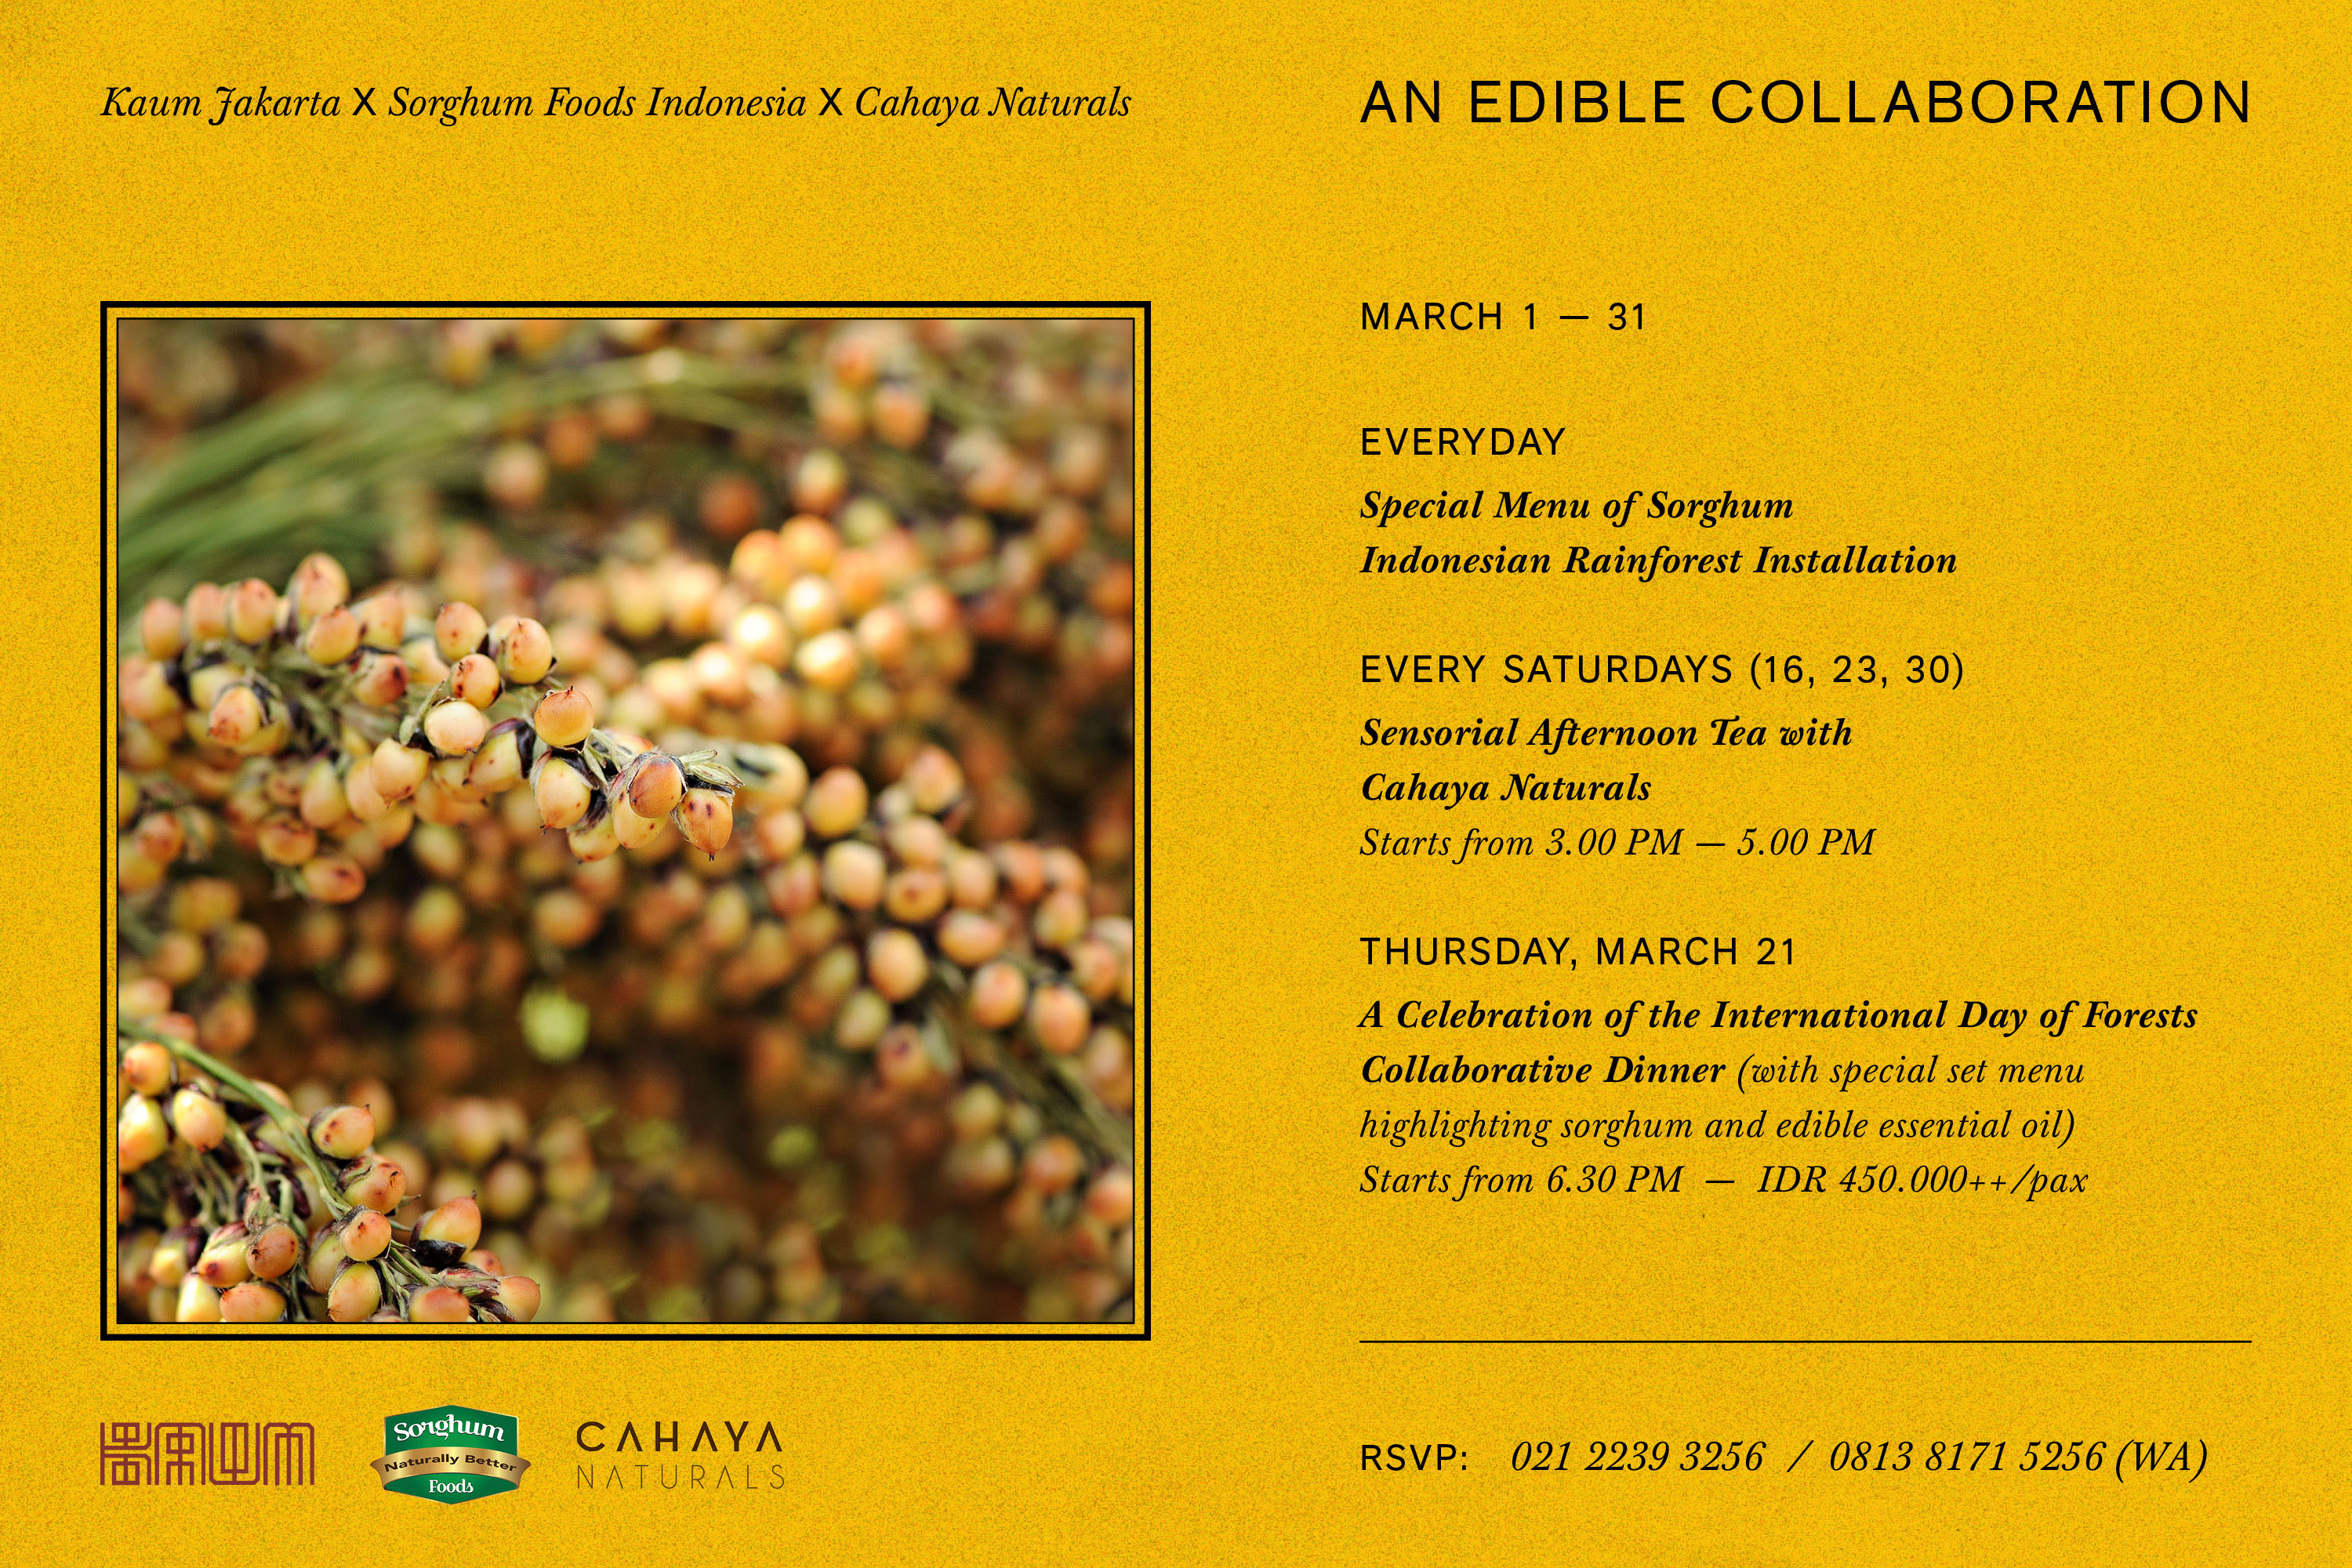 An Edible Collaboration: Kaum Jakarta, Sorghum Foods Indonesia, and Cahaya Naturals